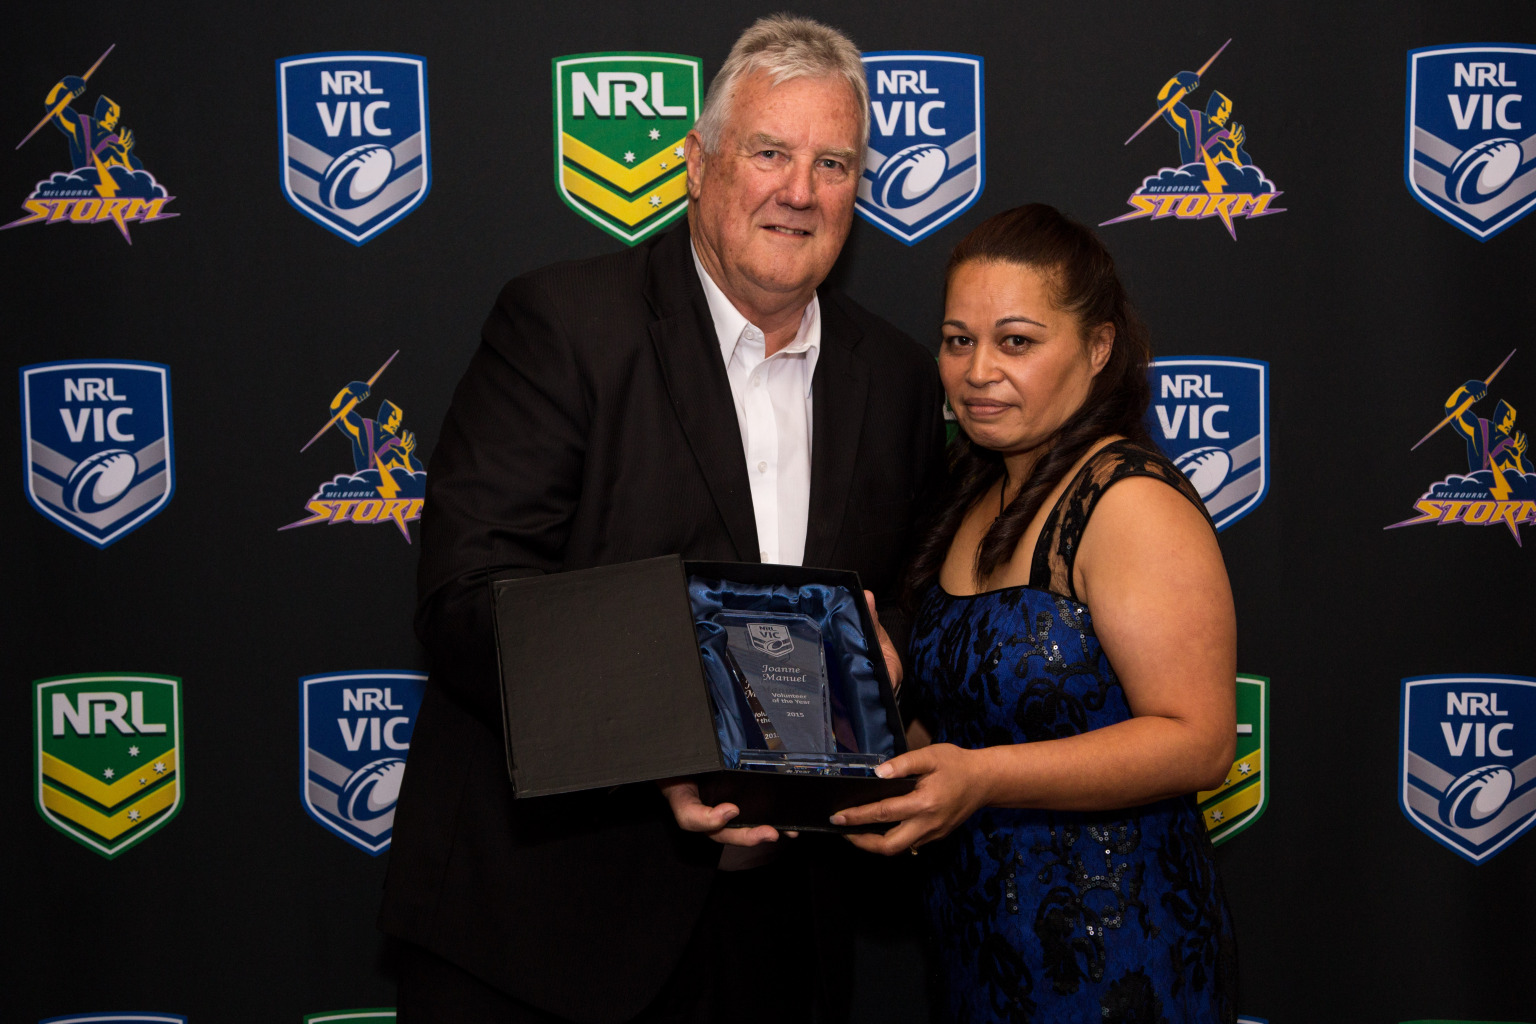 44e93bfd519 Nominations for NRL Victoria Coach, Volunteer and Referee Award - NRL  Victoria - SportsTG